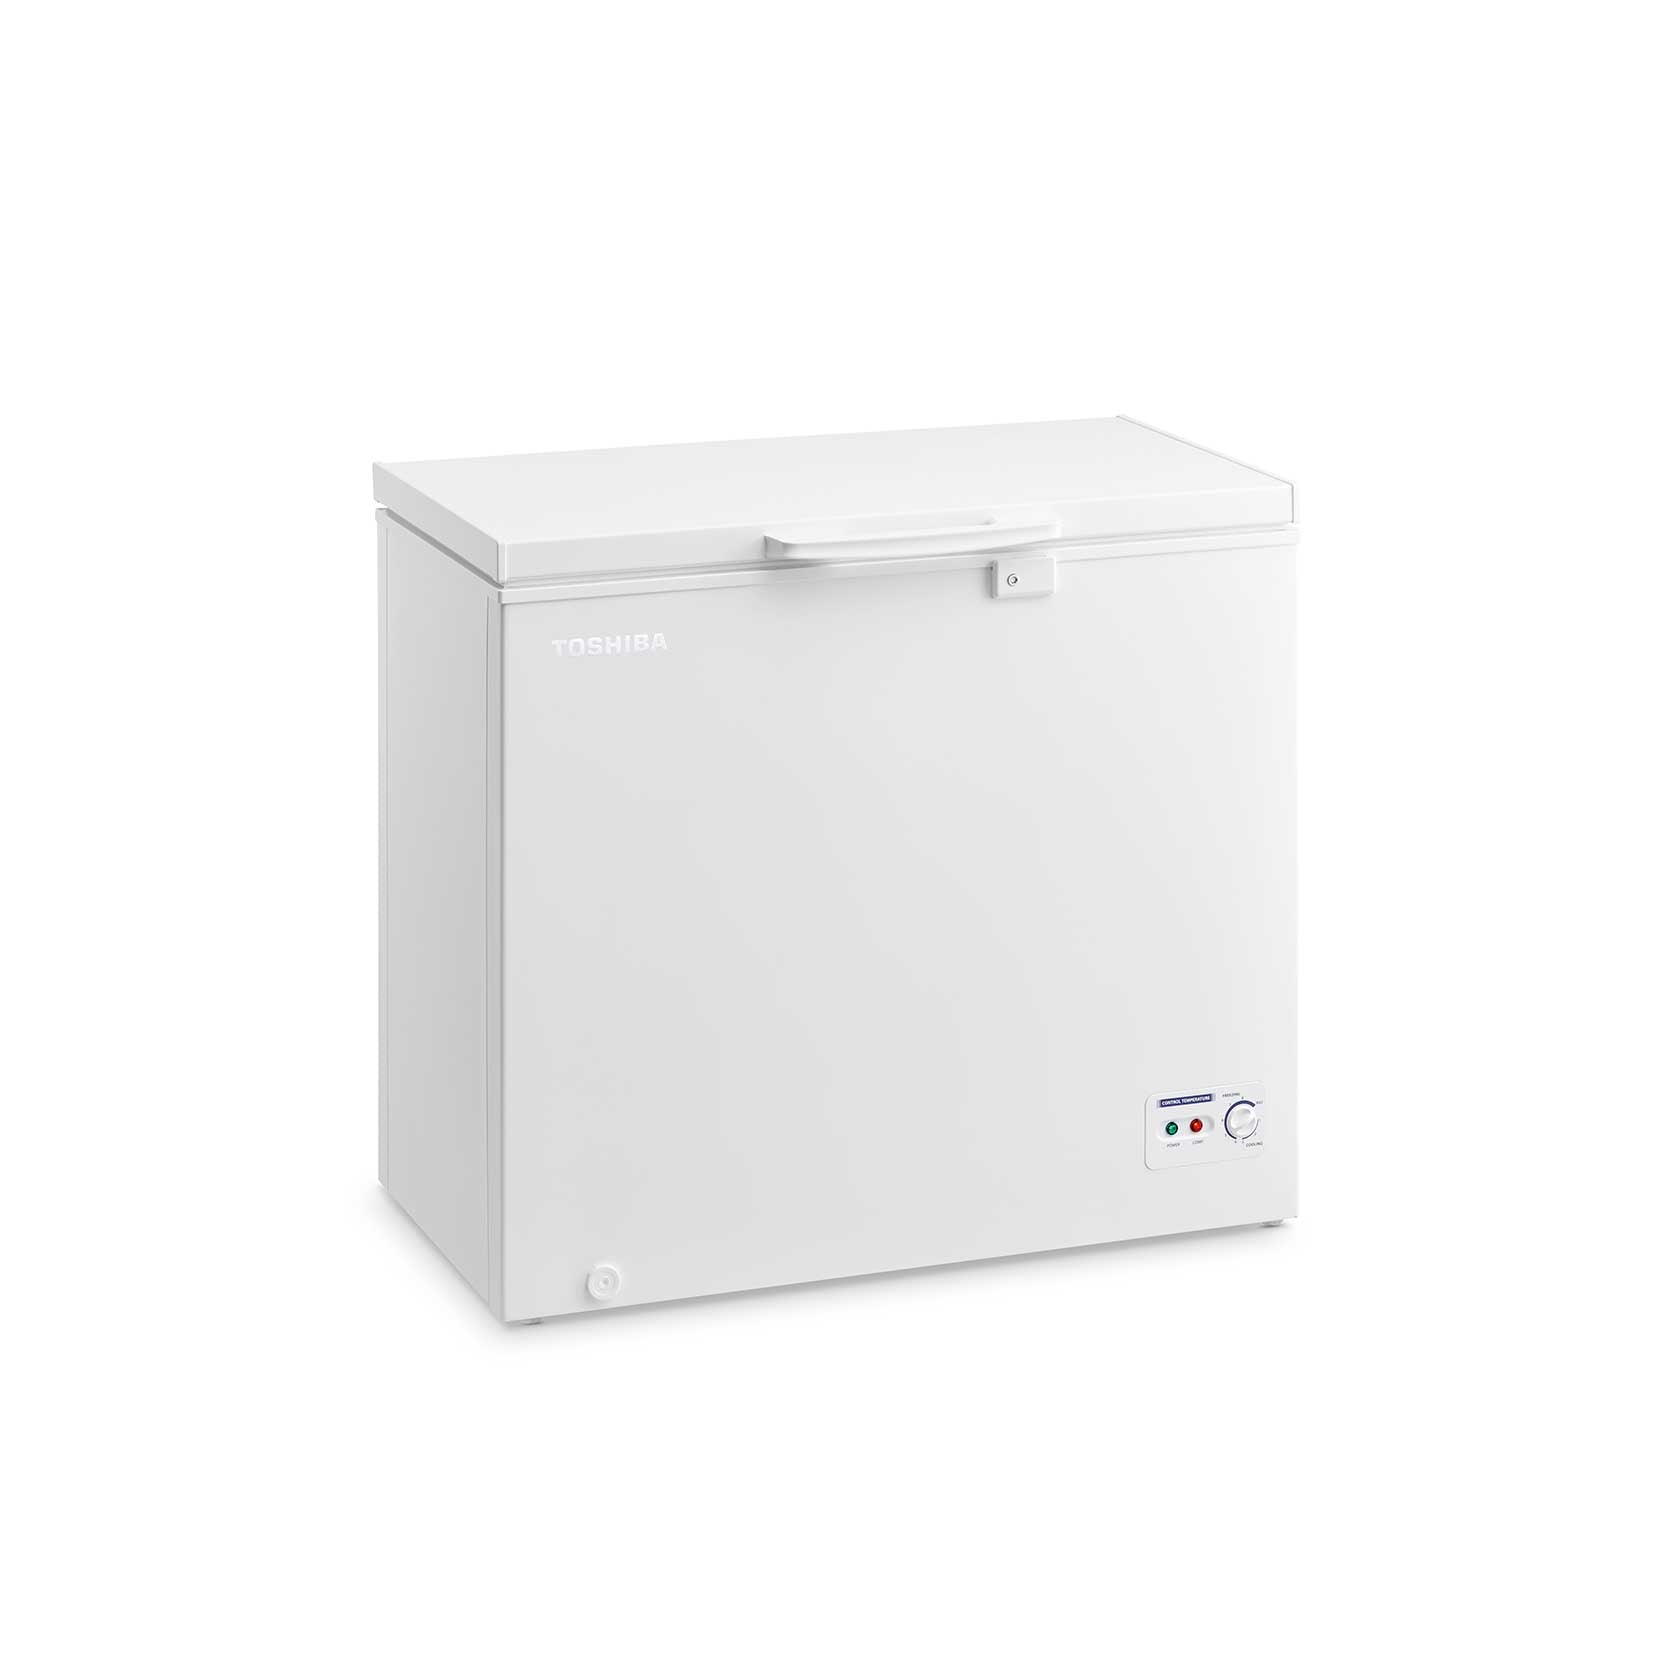 Toshiba Chest Freezer 198 Ltr - CR-A198U